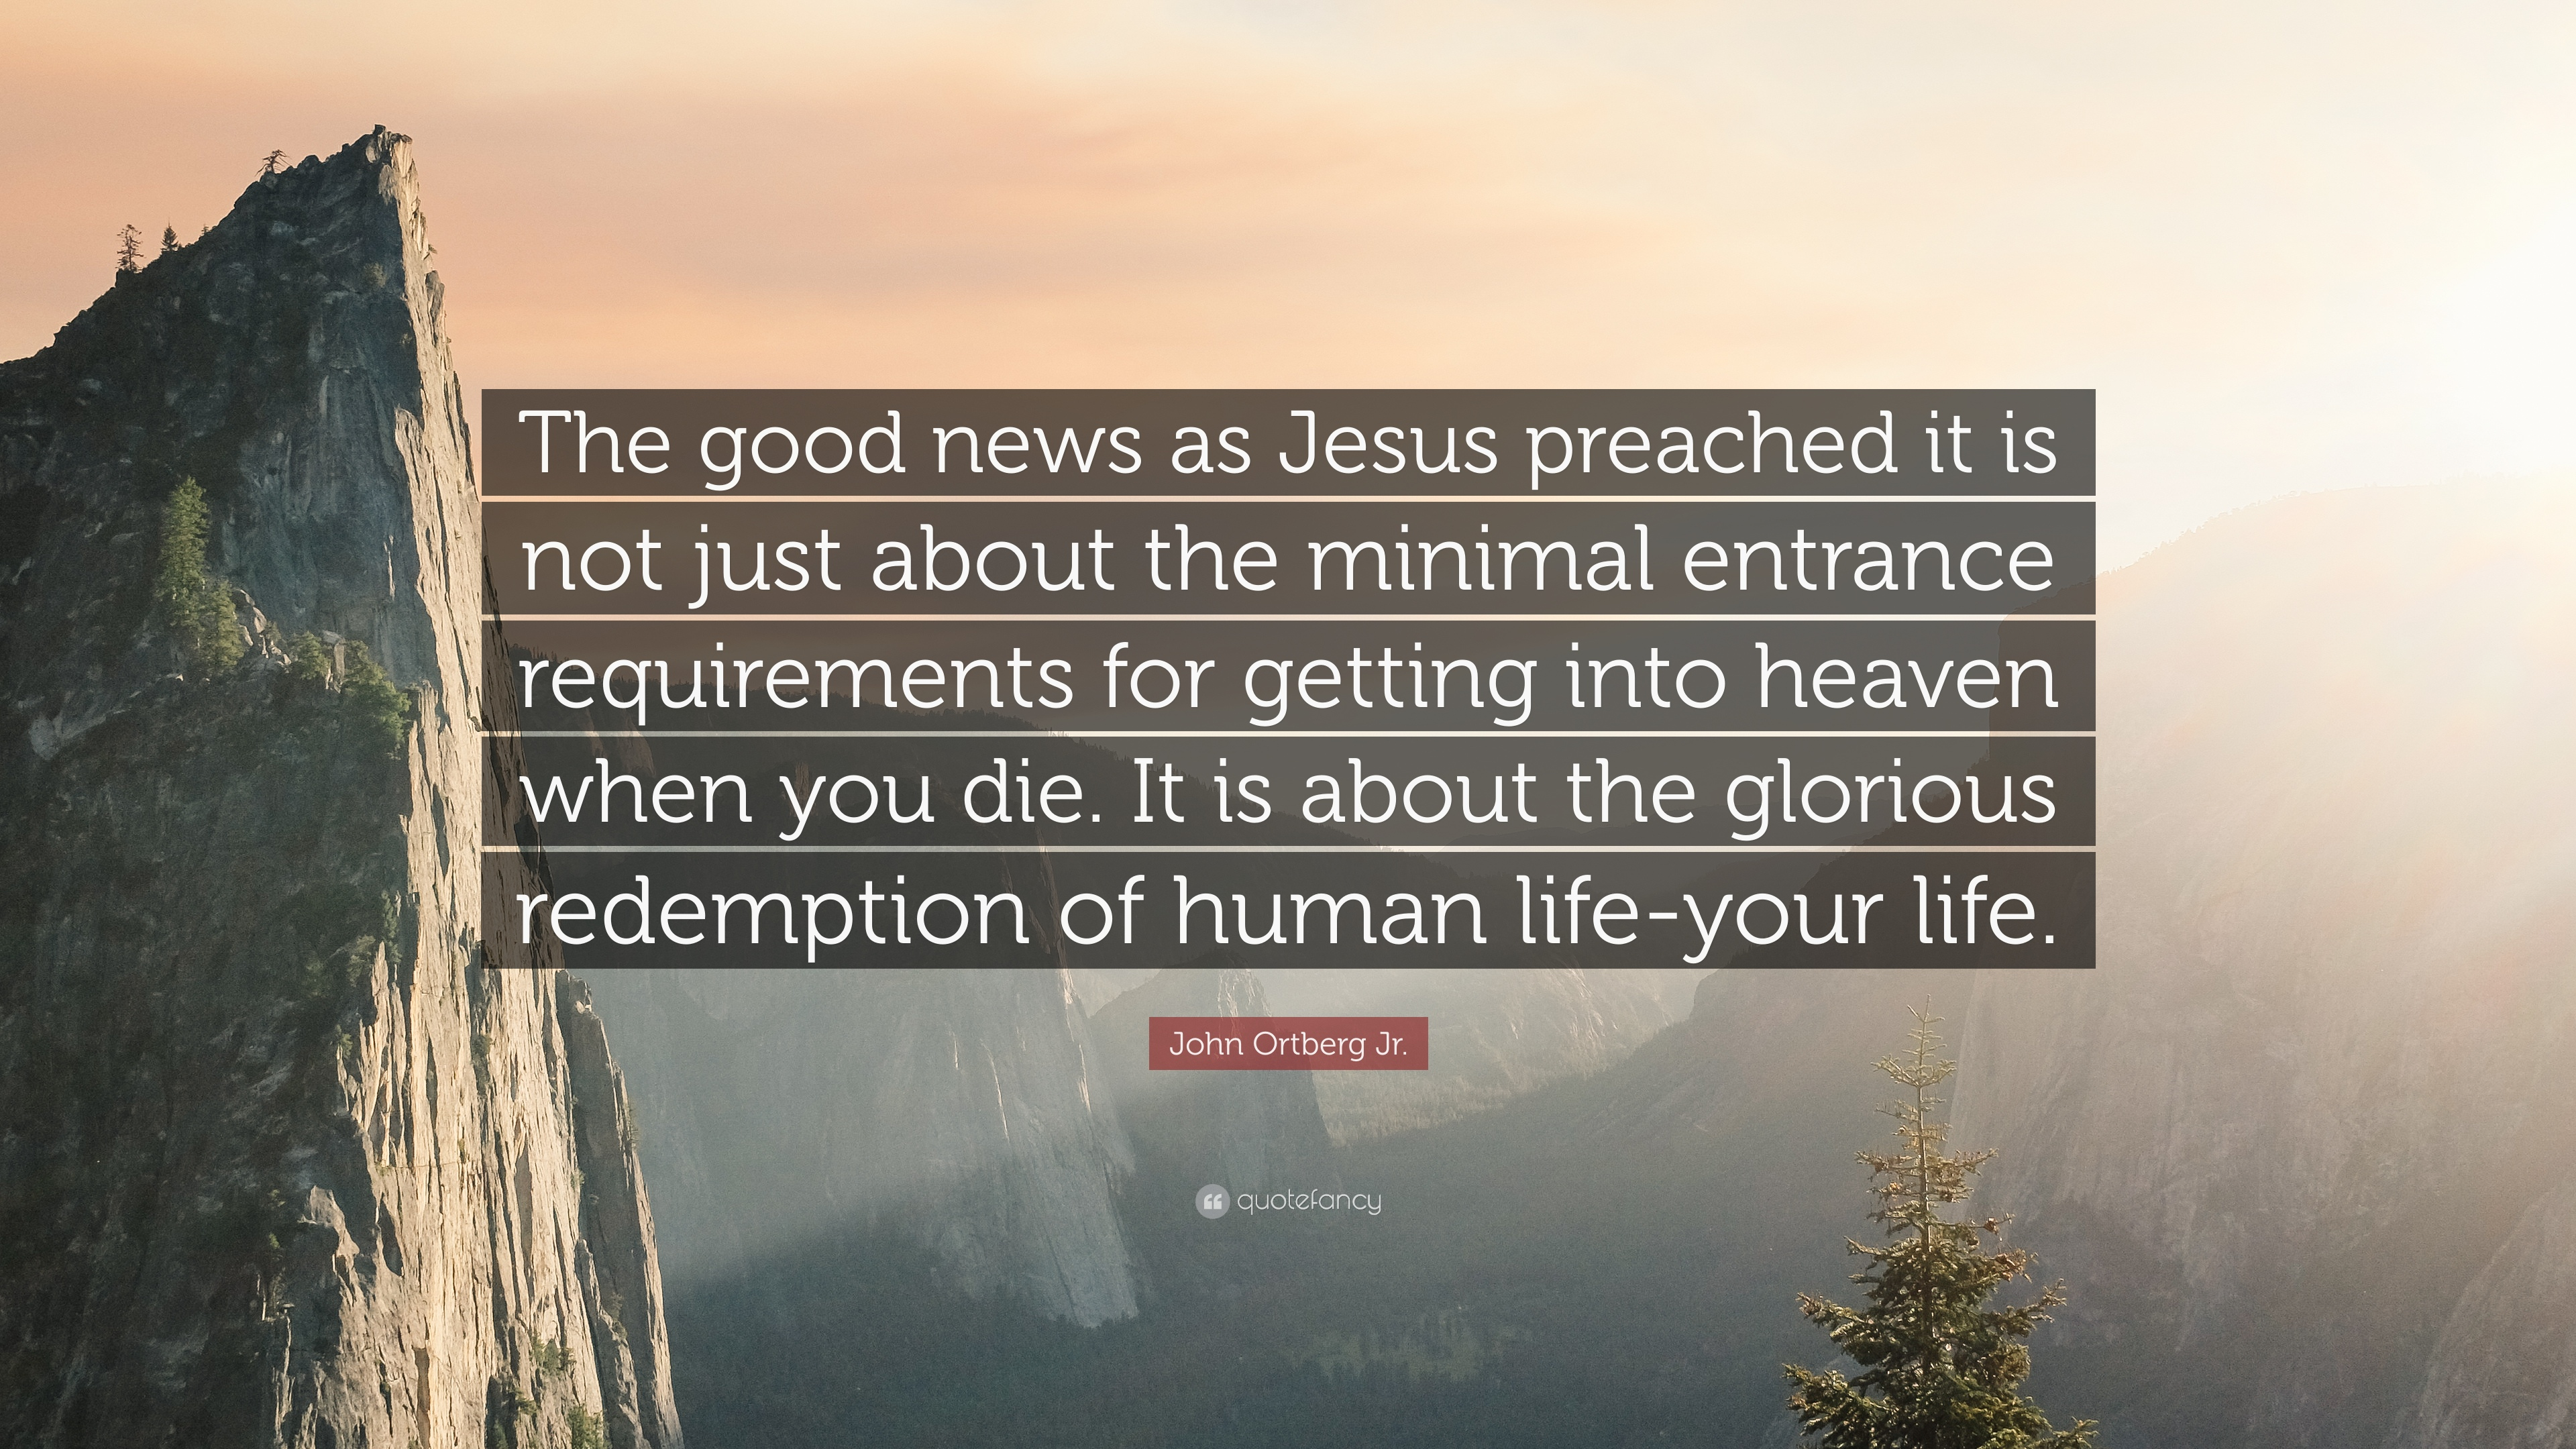 Good News Is That This Morning They >> John Ortberg Jr Quote The Good News As Jesus Preached It Is Not